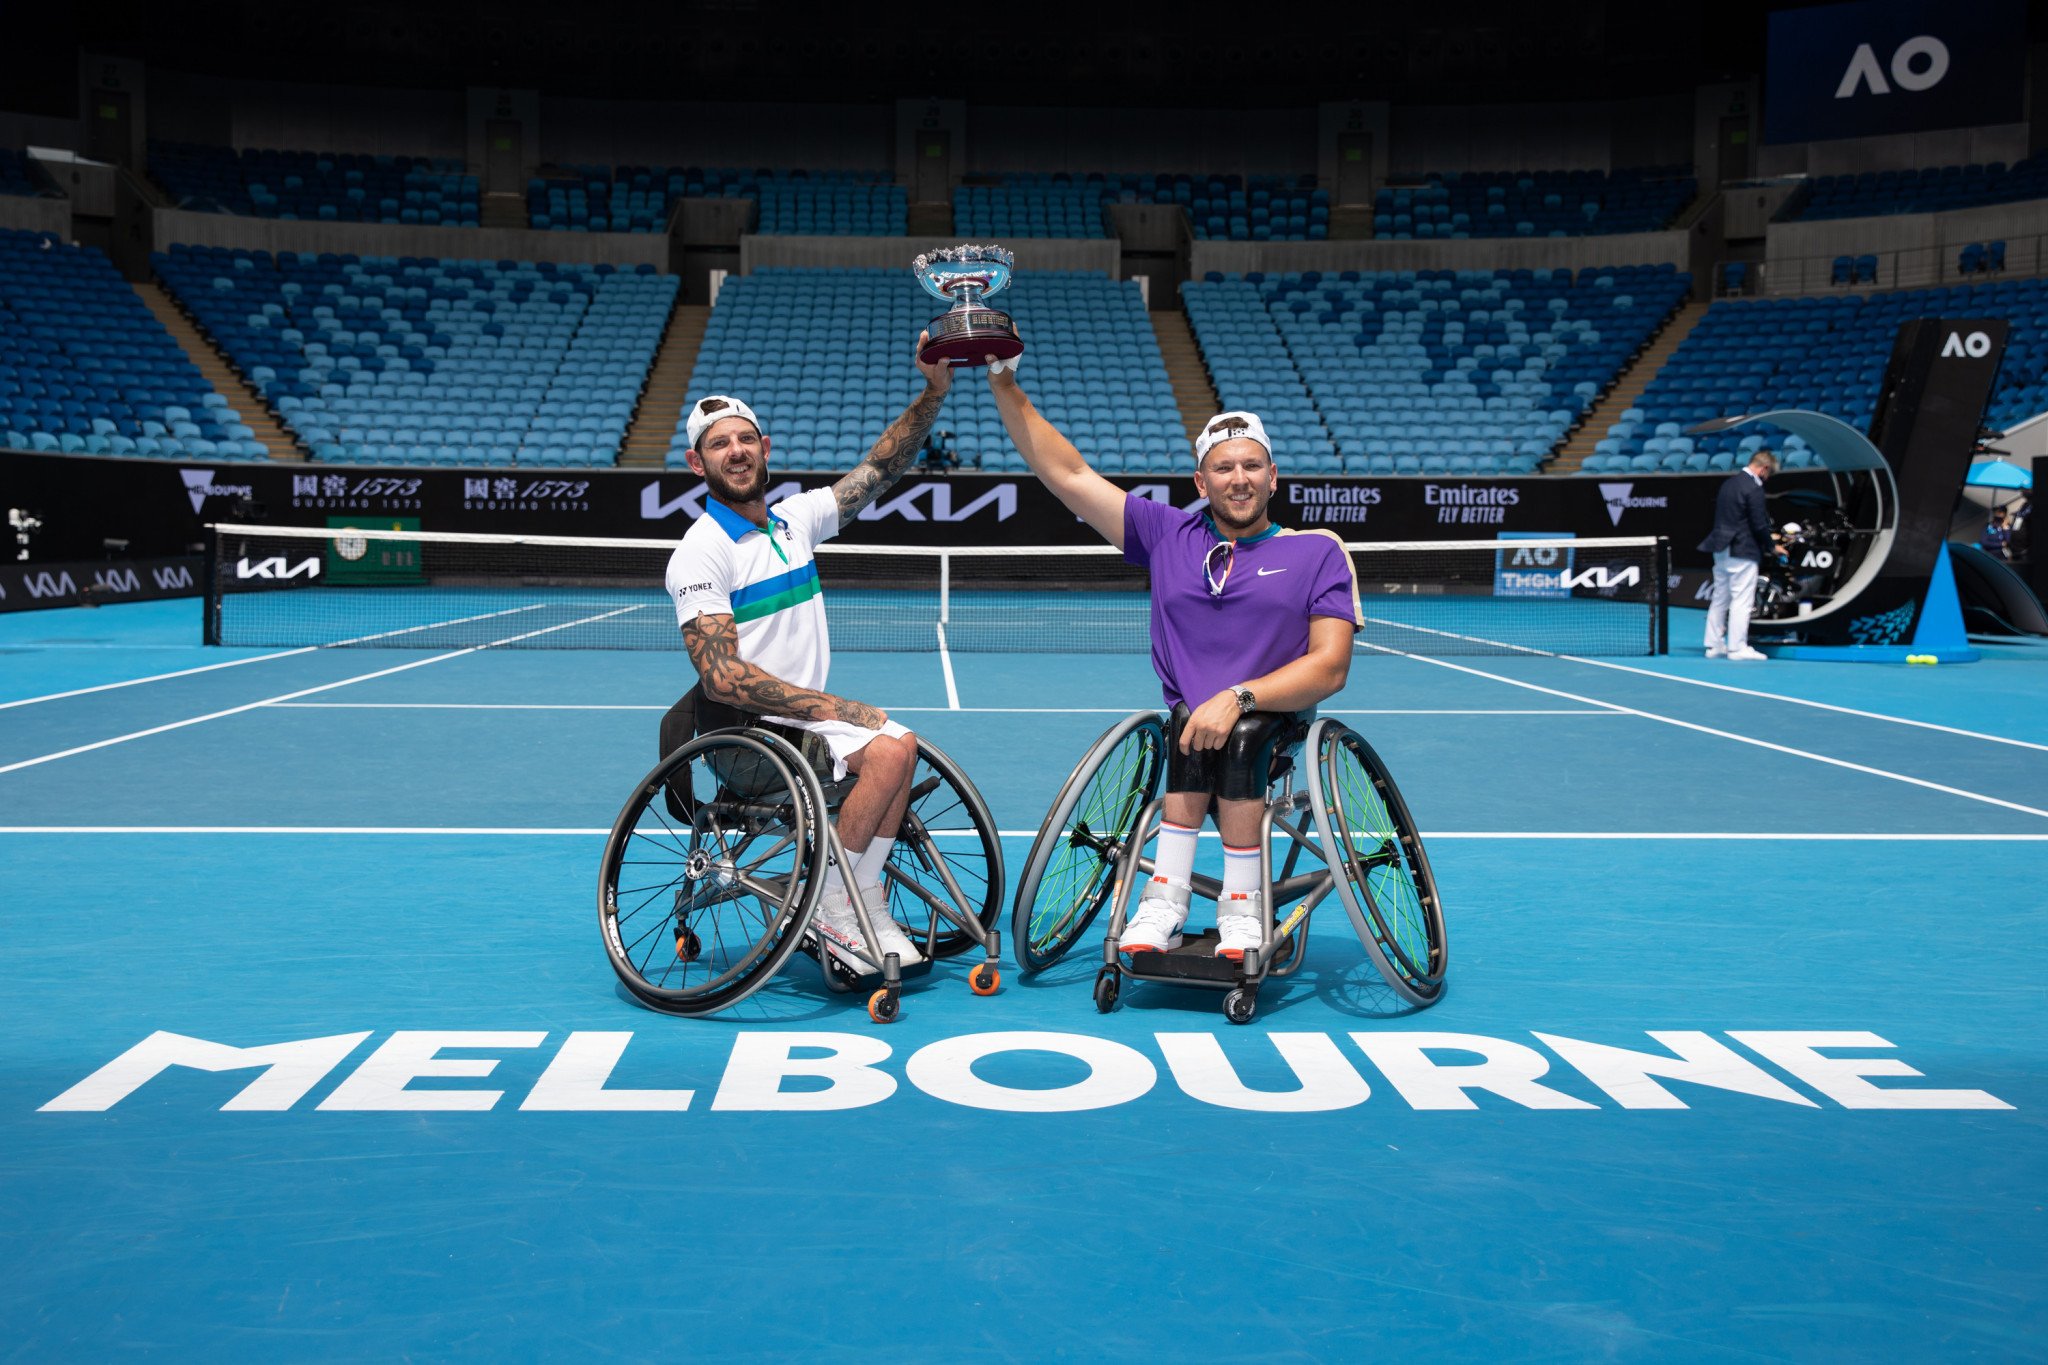 Australia's Dylan Alcott and Heath Davidson are the Australian Open quad doubles champions for the fourth year in a row ©Getty Images